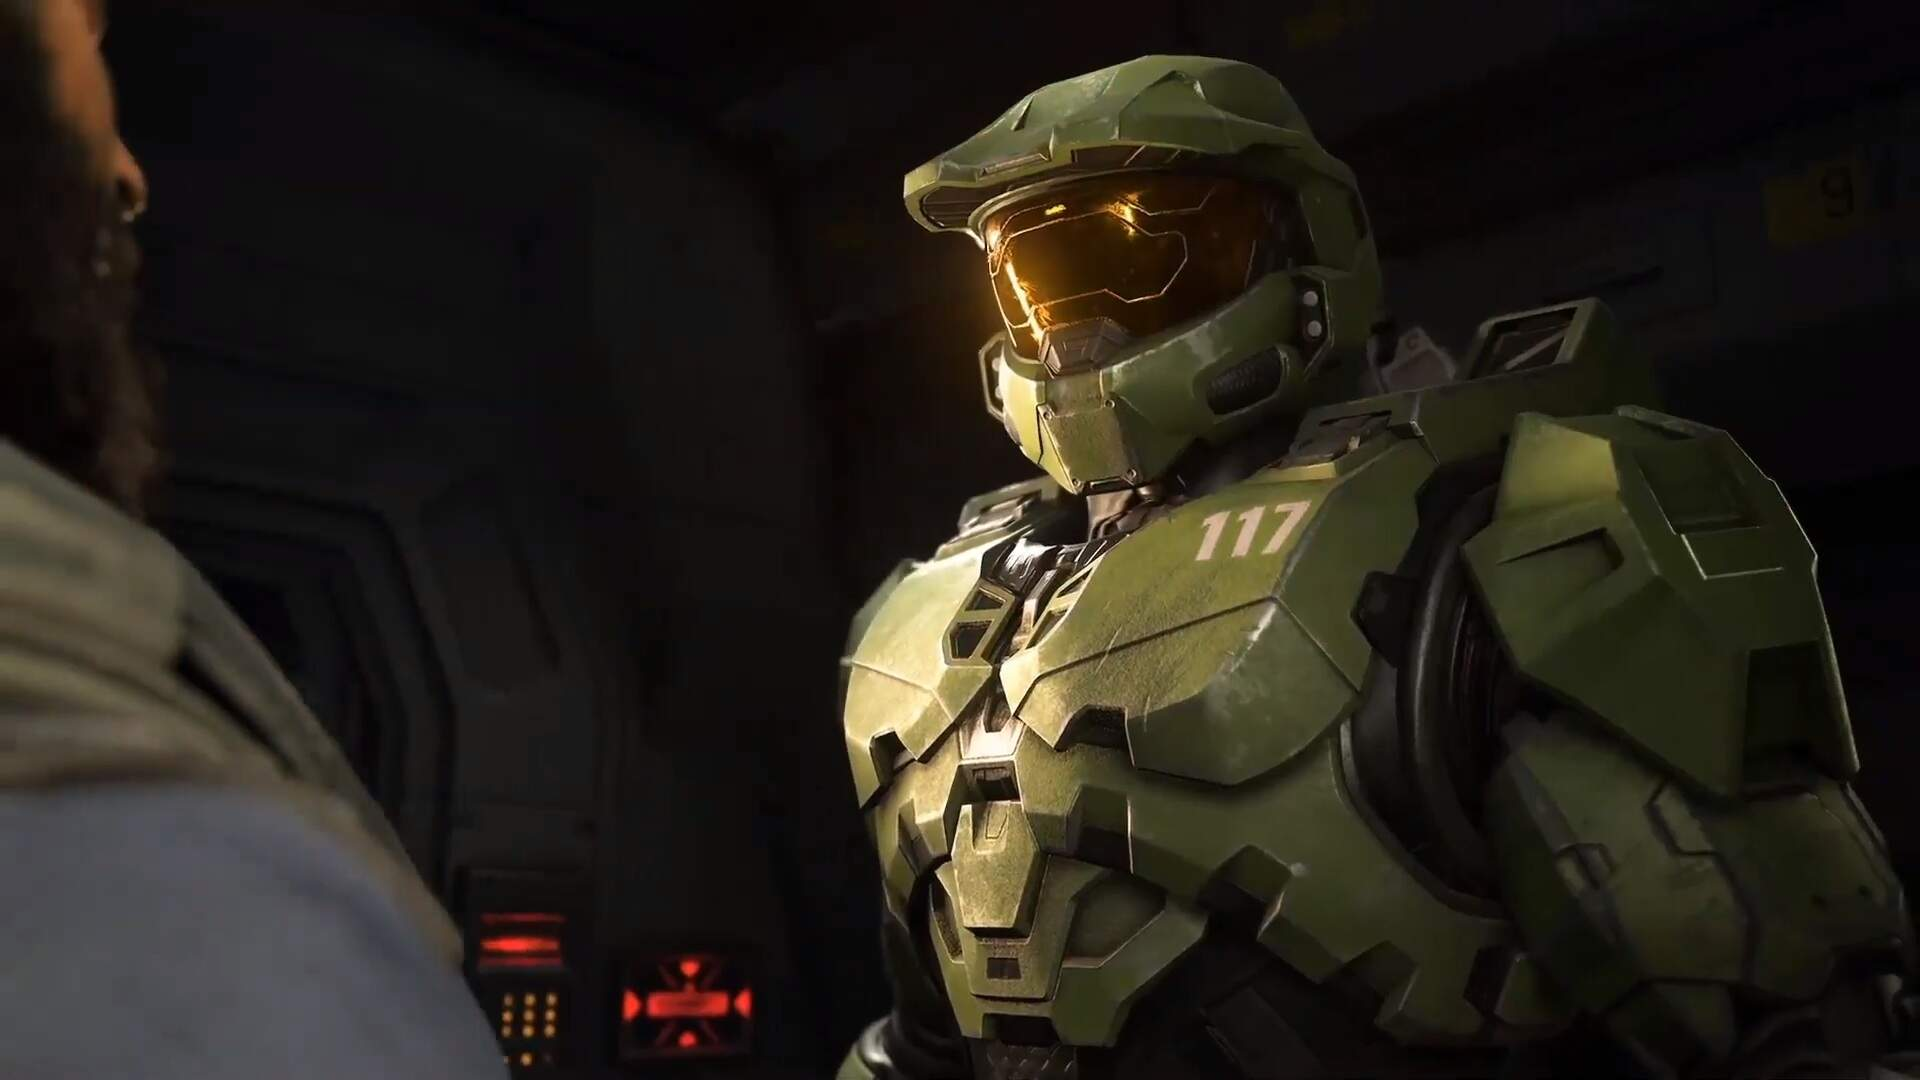 Halo Infinite Shows Off an Open-World Larger Than The Last Two Halo Games Combined